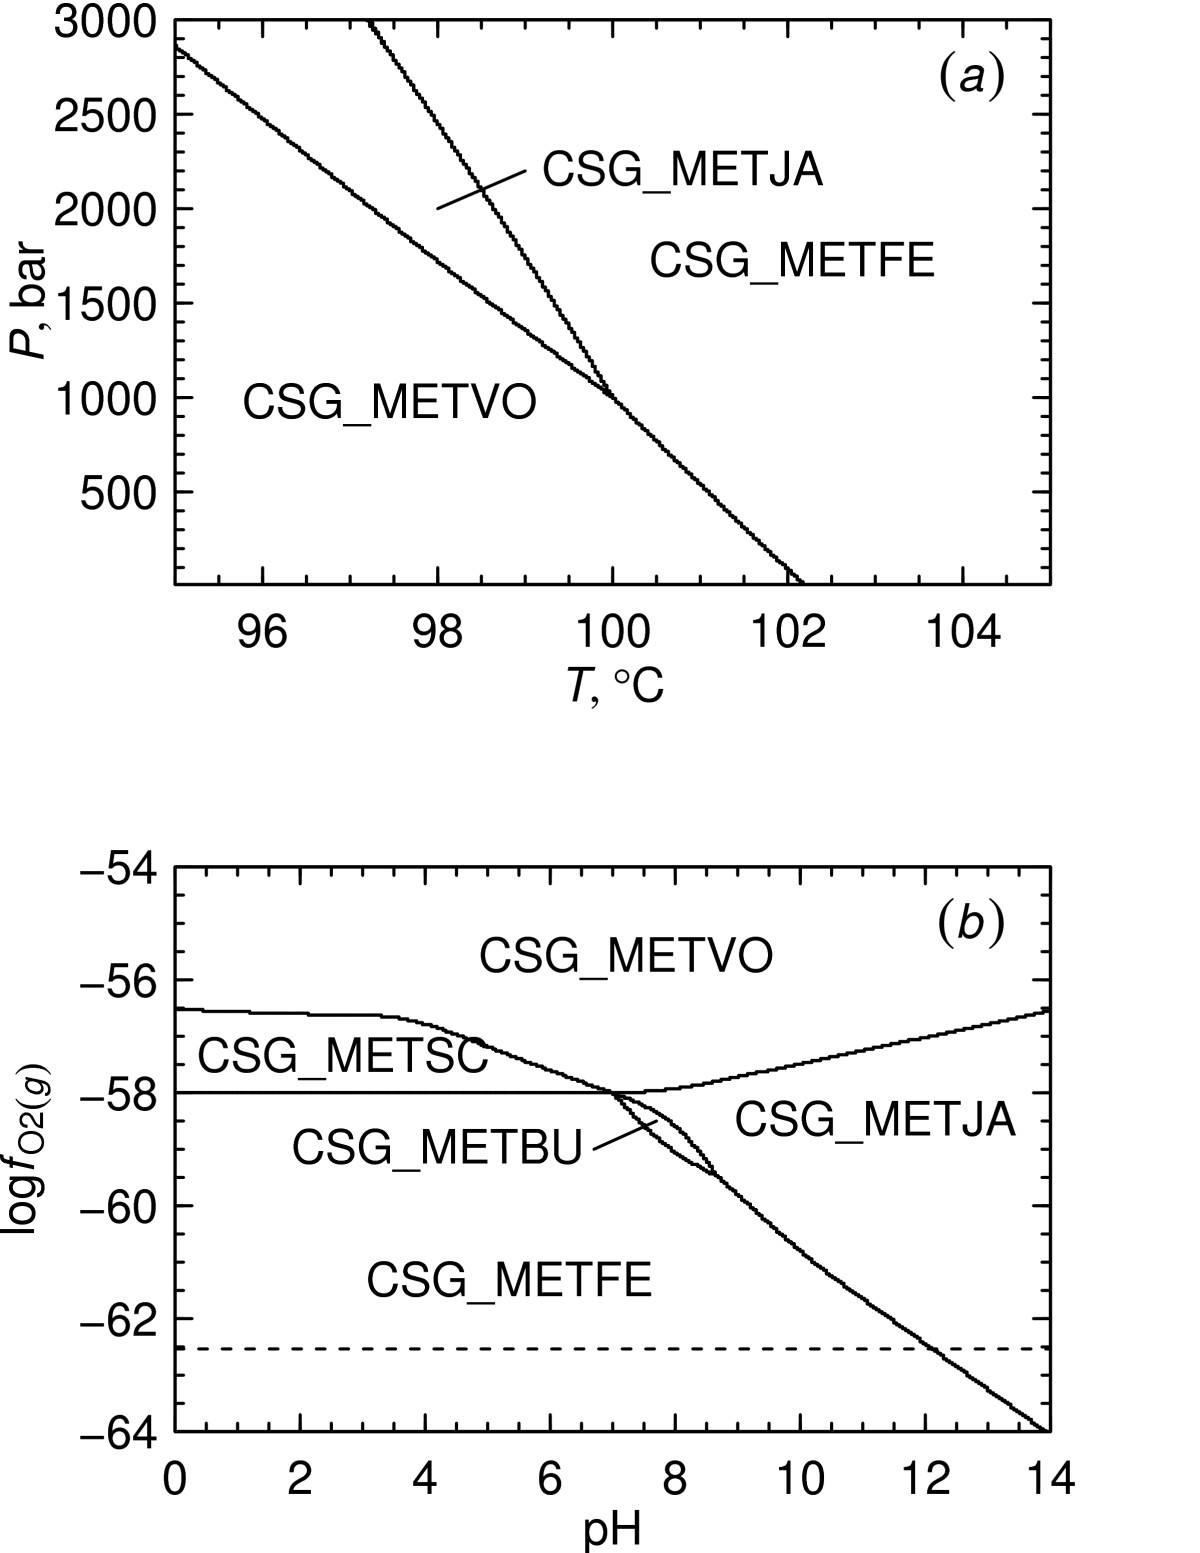 http://static-content.springer.com/image/art%3A10.1186%2F1467-4866-9-10/MediaObjects/12932_2008_Article_91_Fig7_HTML.jpg